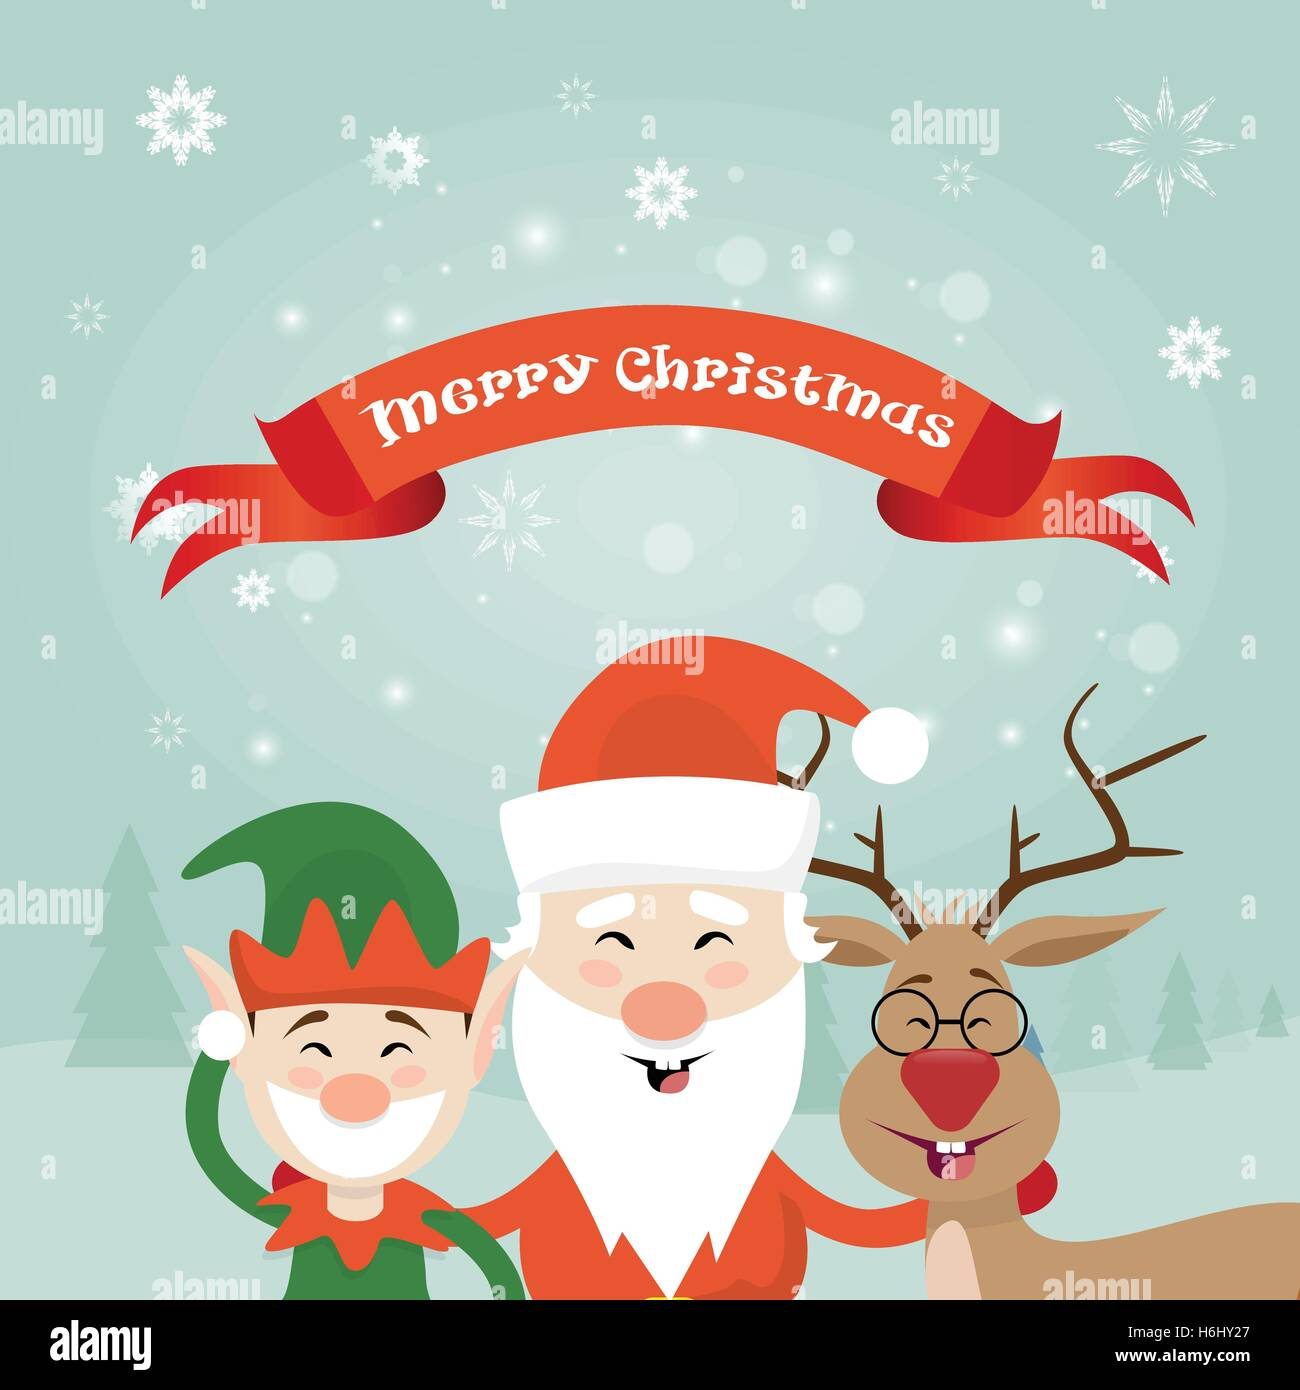 Merry Christmas Santa Clause Reindeer Elf Character Poster Greeting Card Flat Vector Illustration - Stock Image